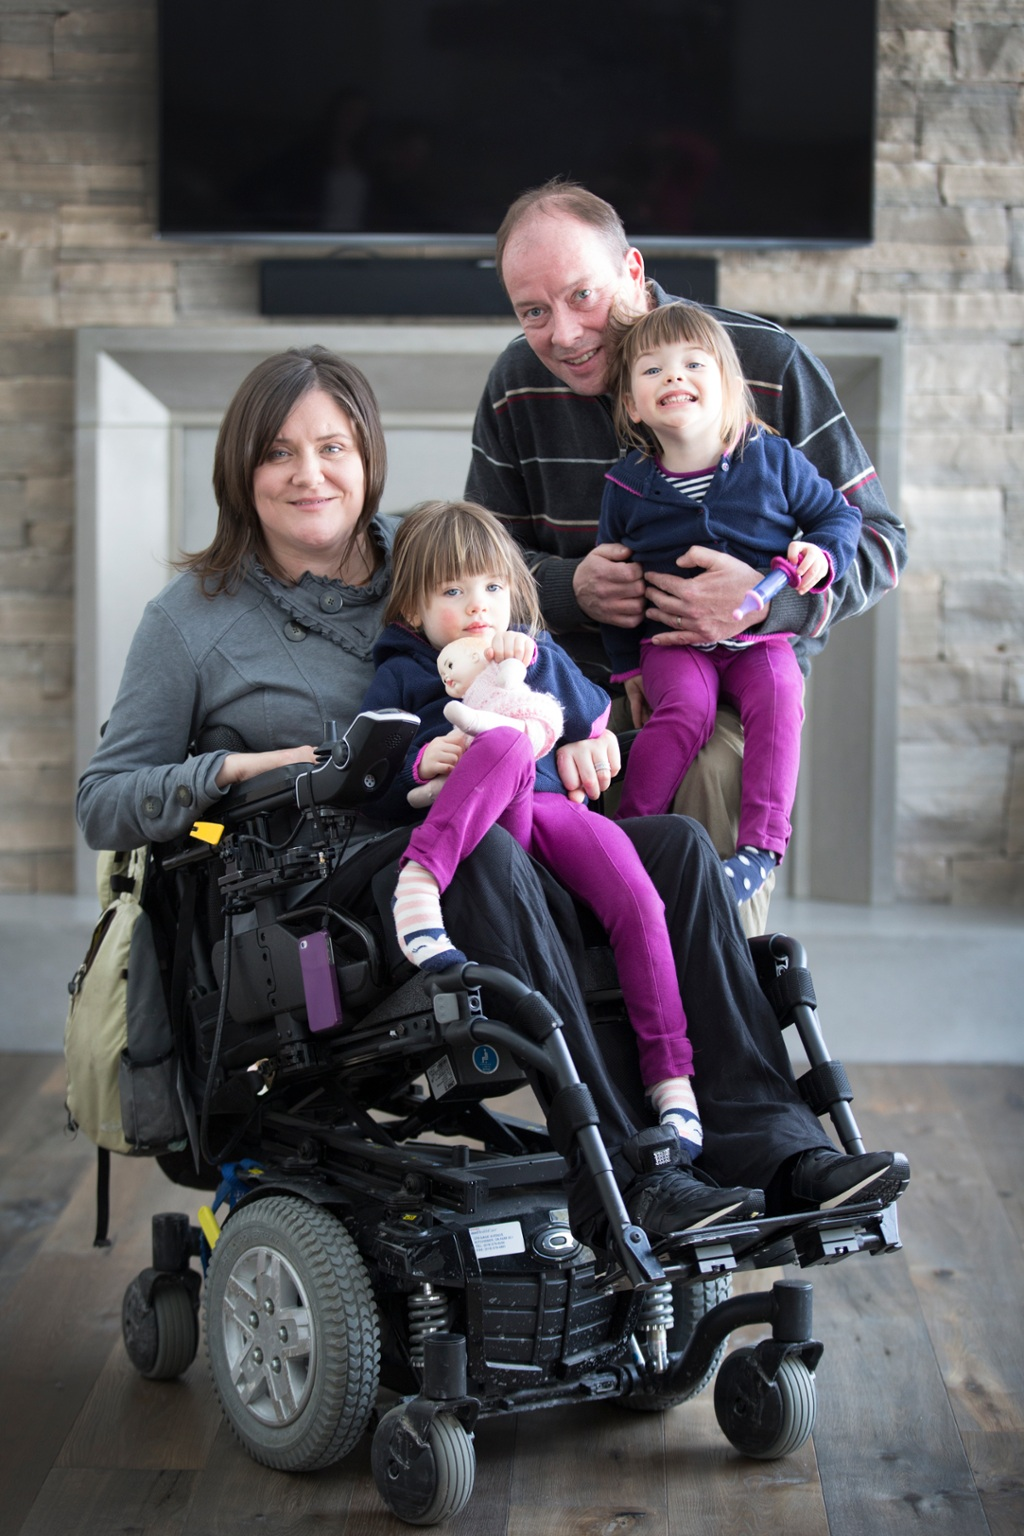 quadriplegic wheelchair wooden baby doll high chair mom raising twin girls faces extra challenges